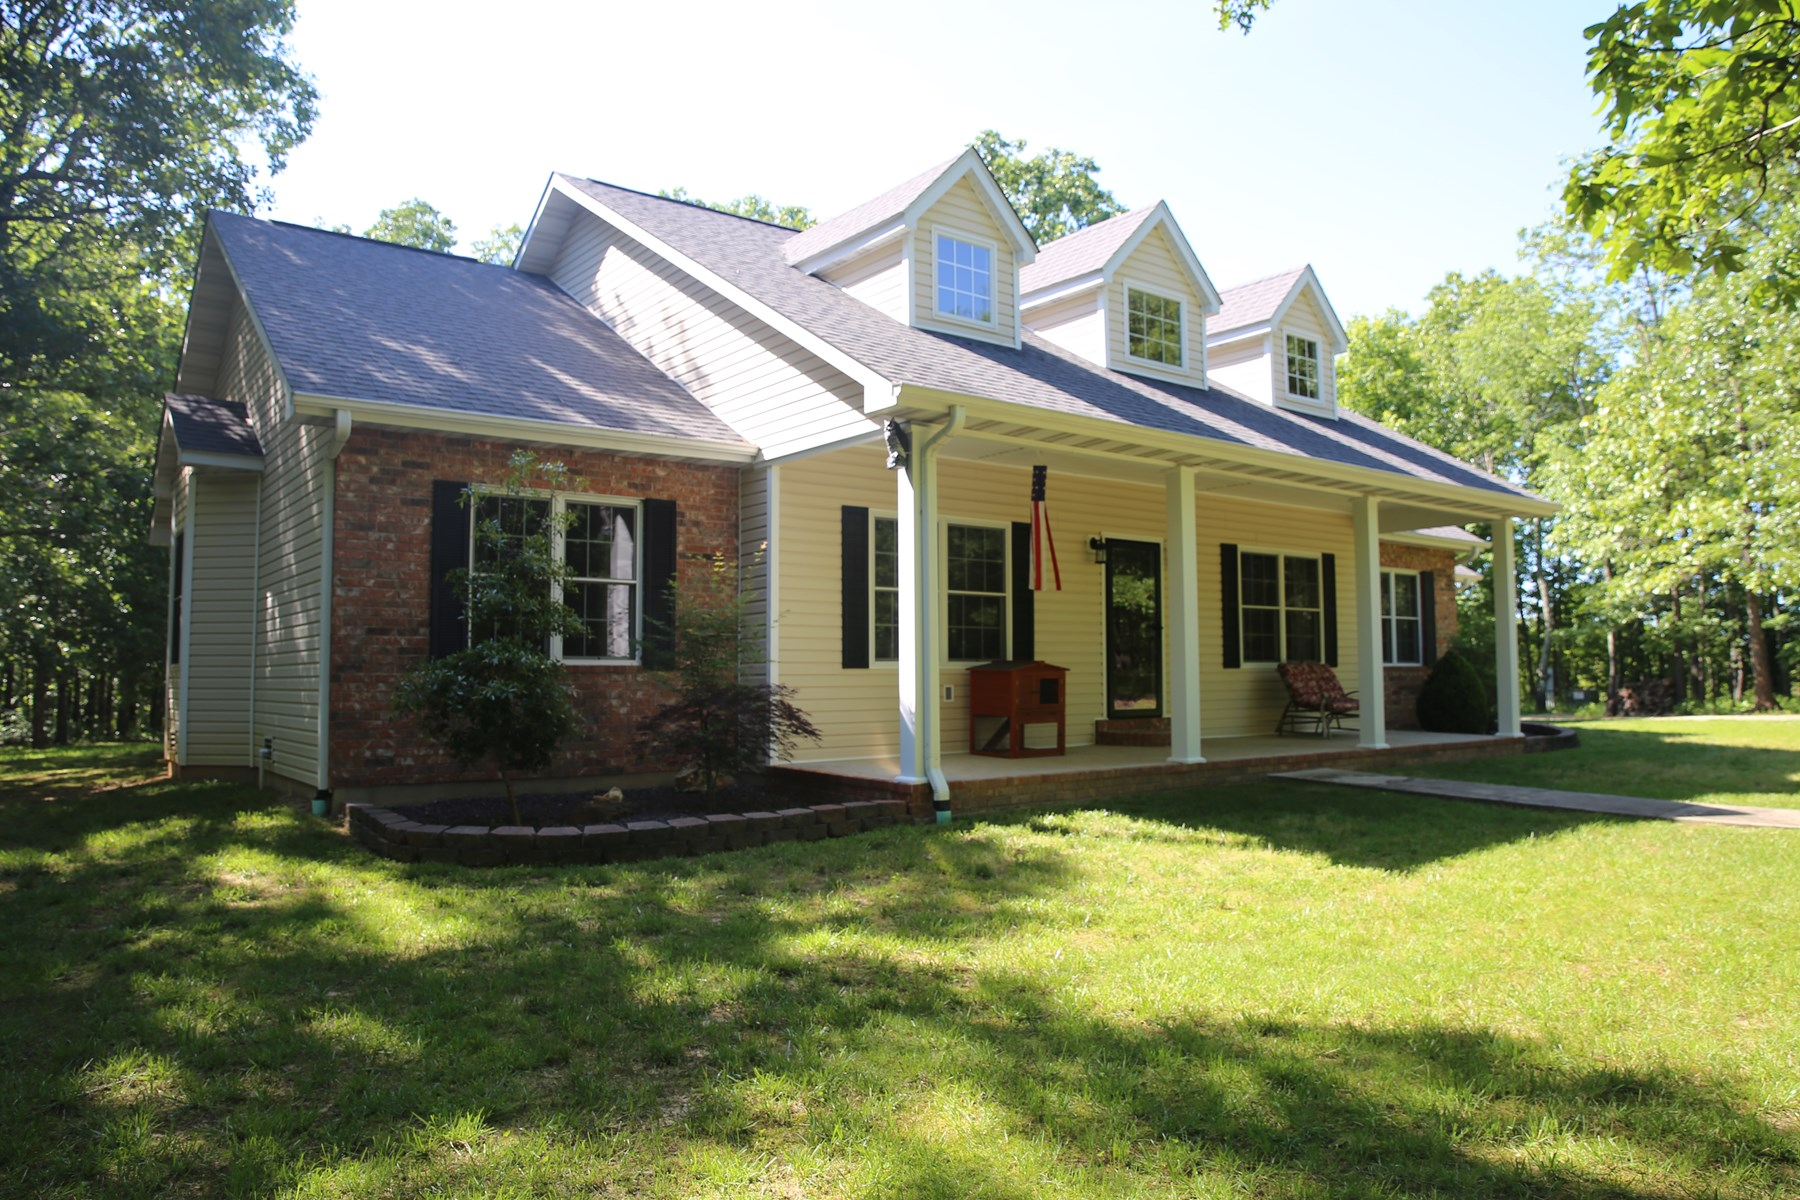 Custom Built 3 Bed and 2 Bath Home in Rural West Plains, MO